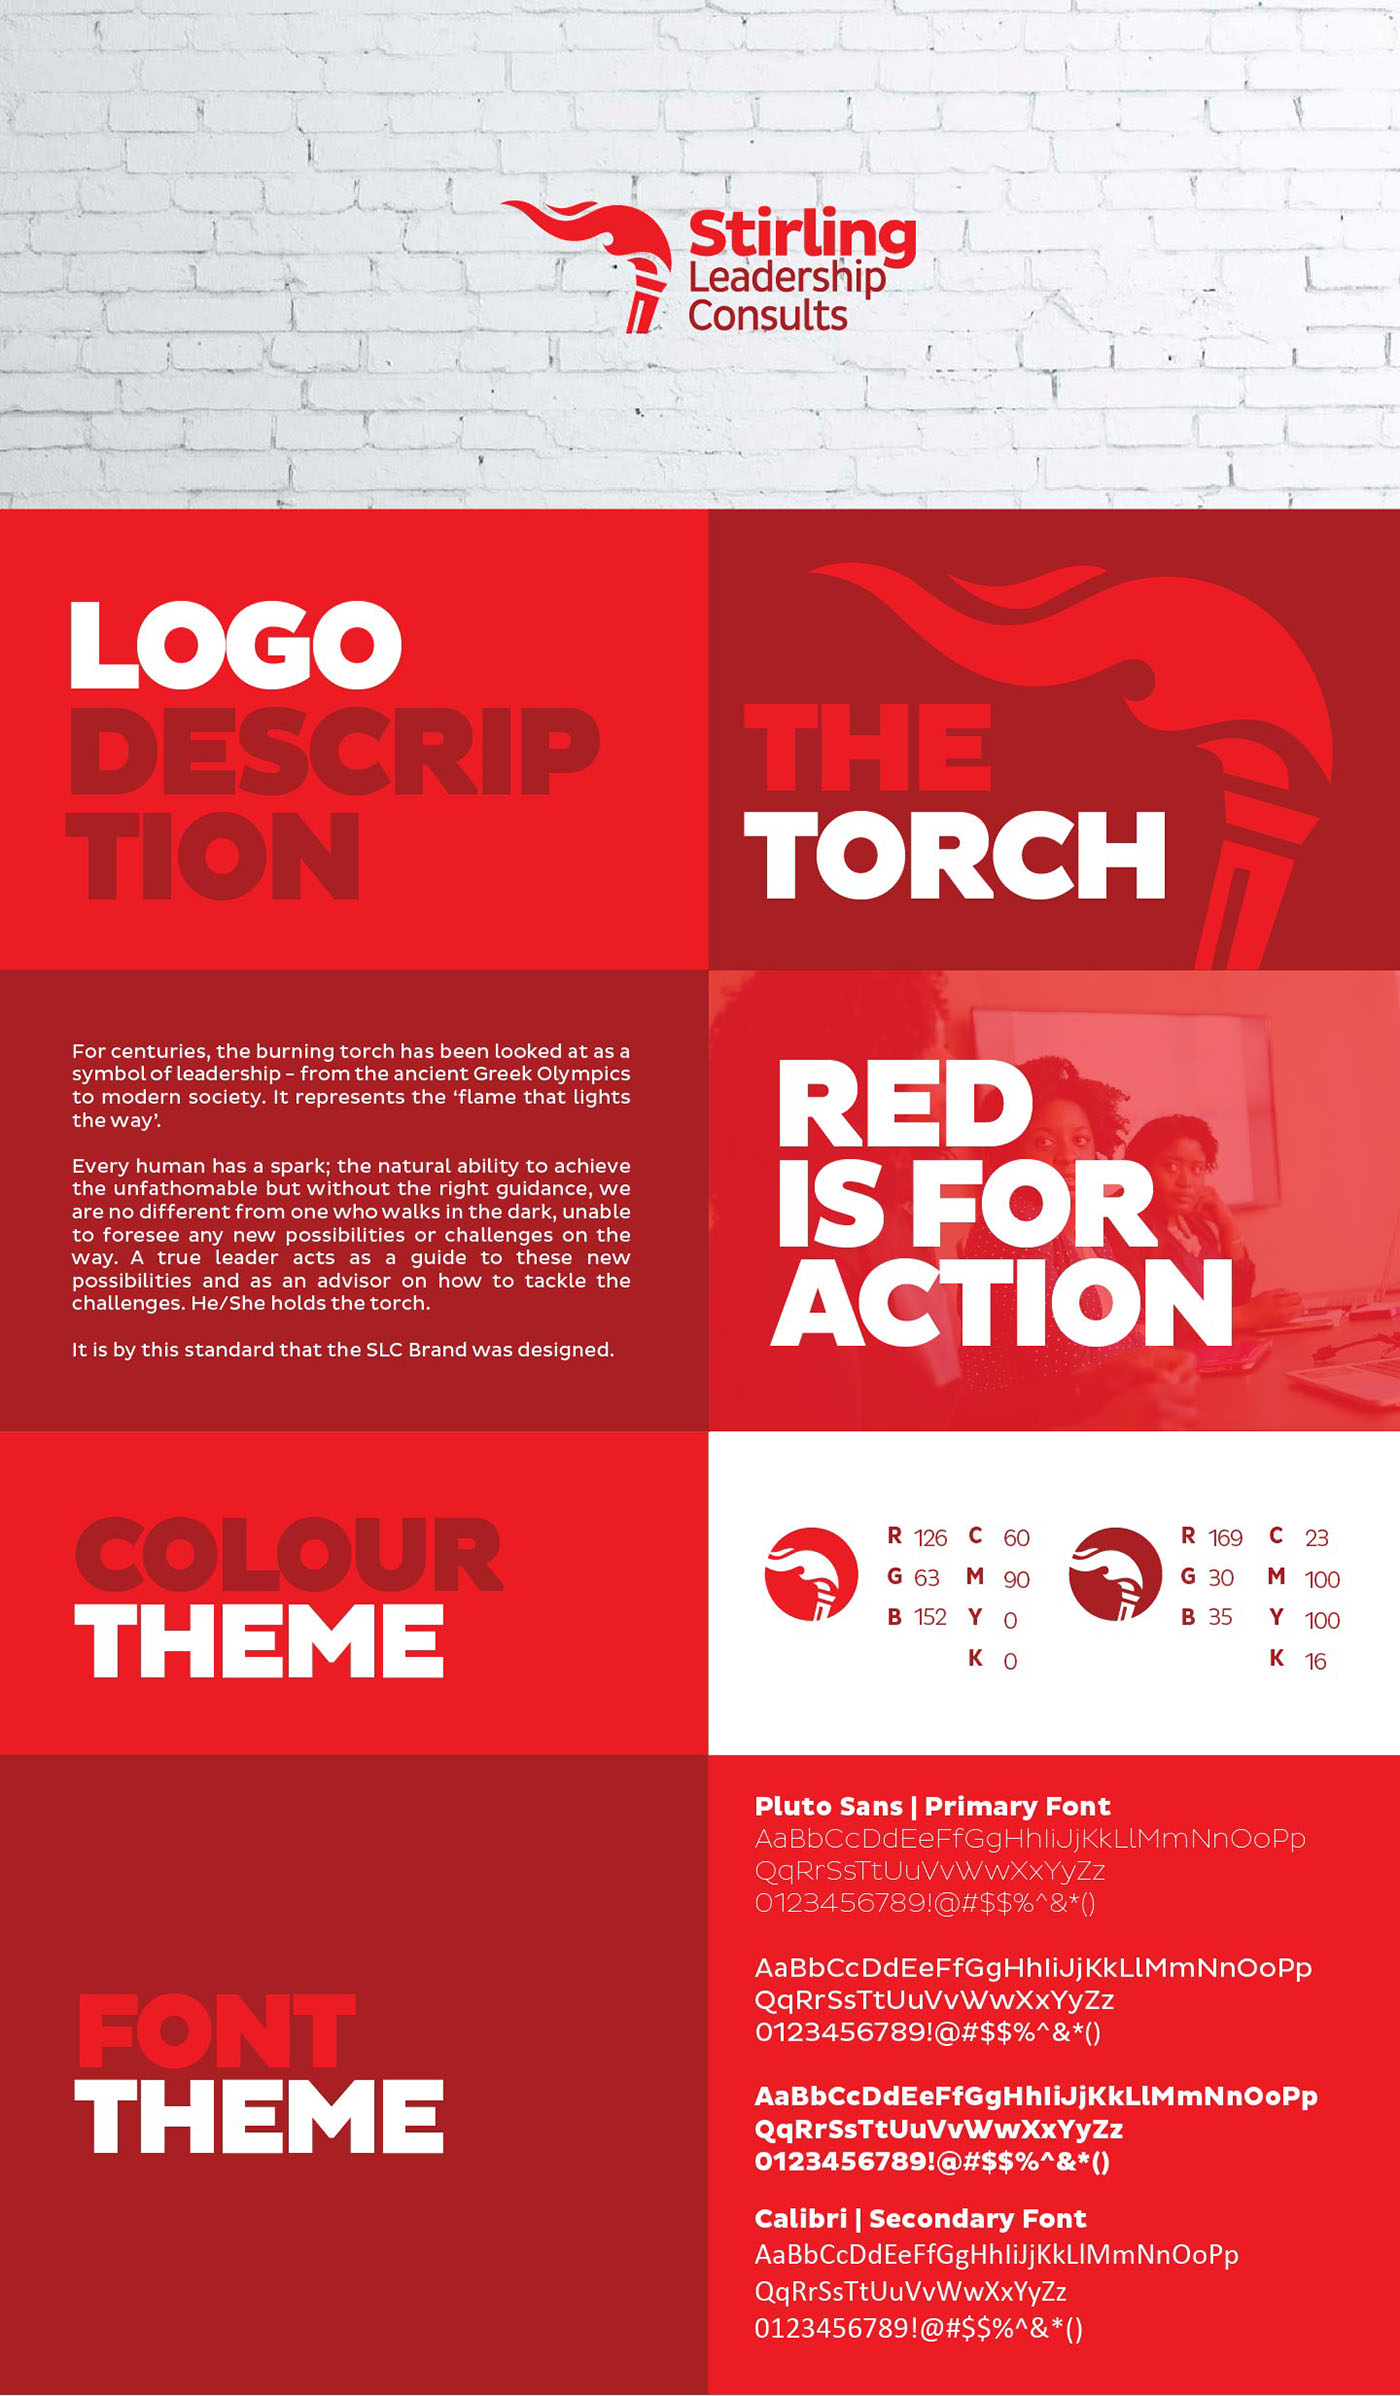 Stirling Leadership Consults Brand Identity on Behance